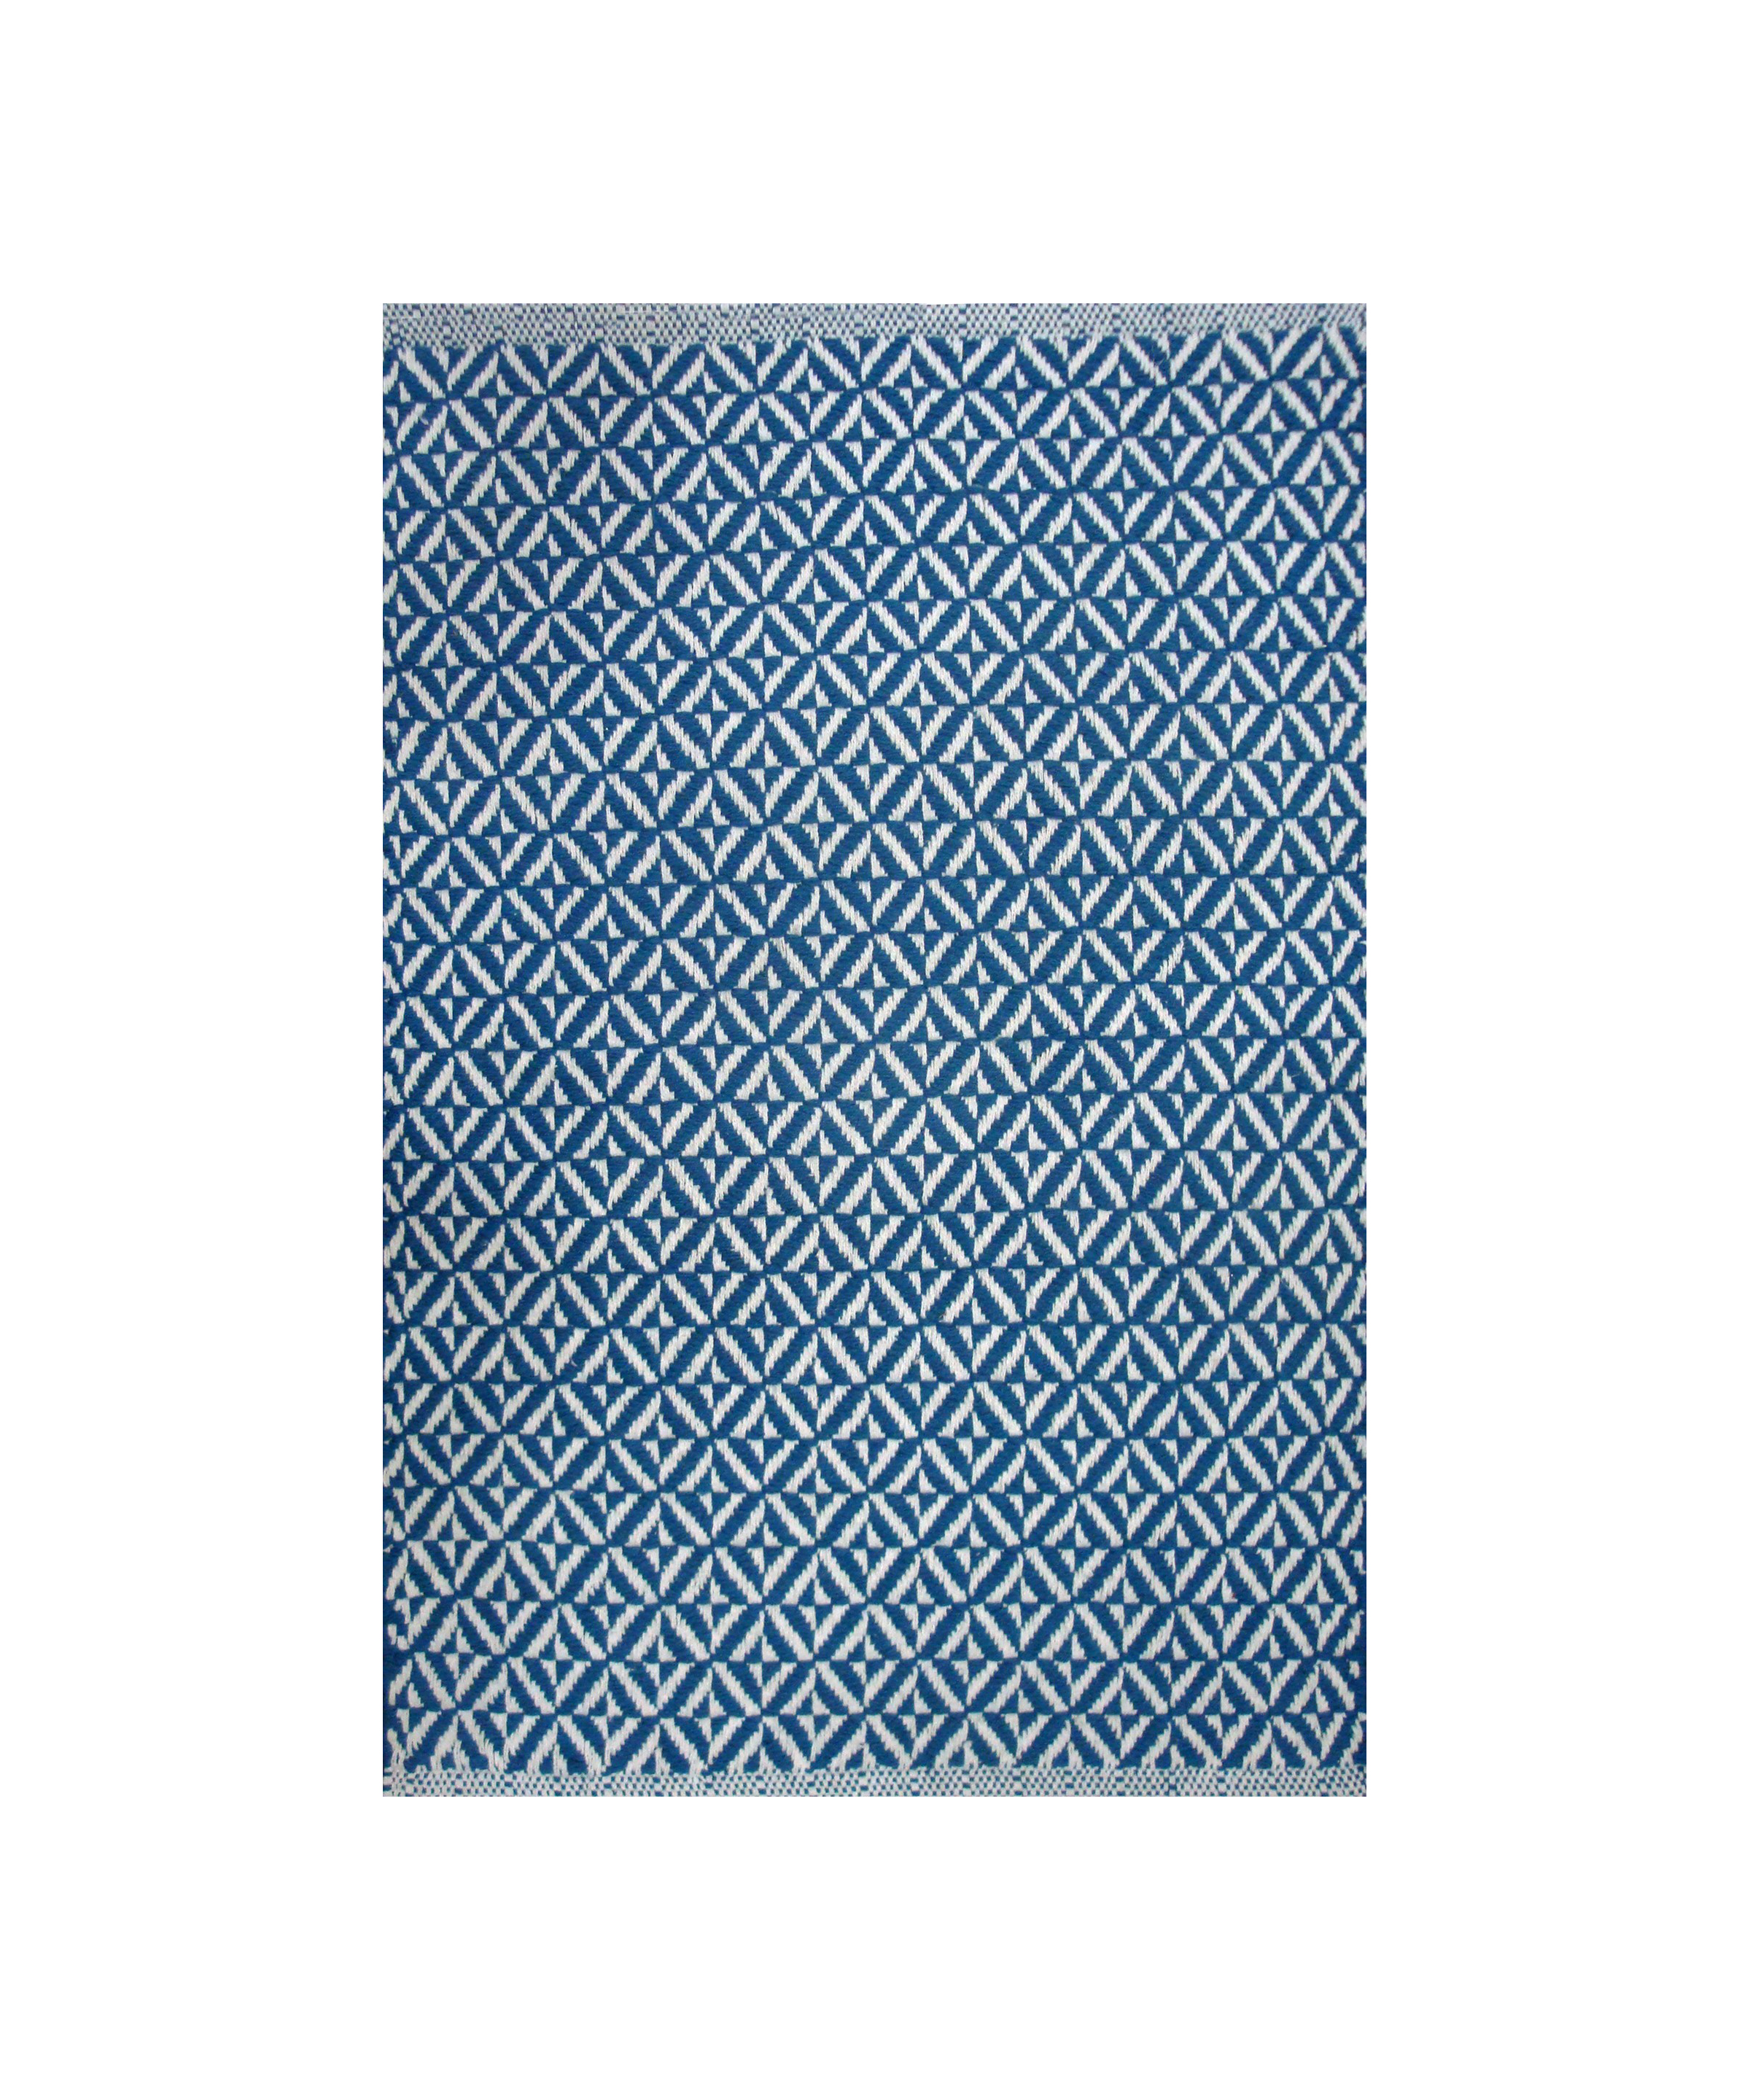 Dhurrie Bev Sailor Blue (Available Sizes: 2x3, 2x8, 3x5, 4x6, 5x8, 7x9), Amanda's House Of Elegance  ($27.95 – $286.95)